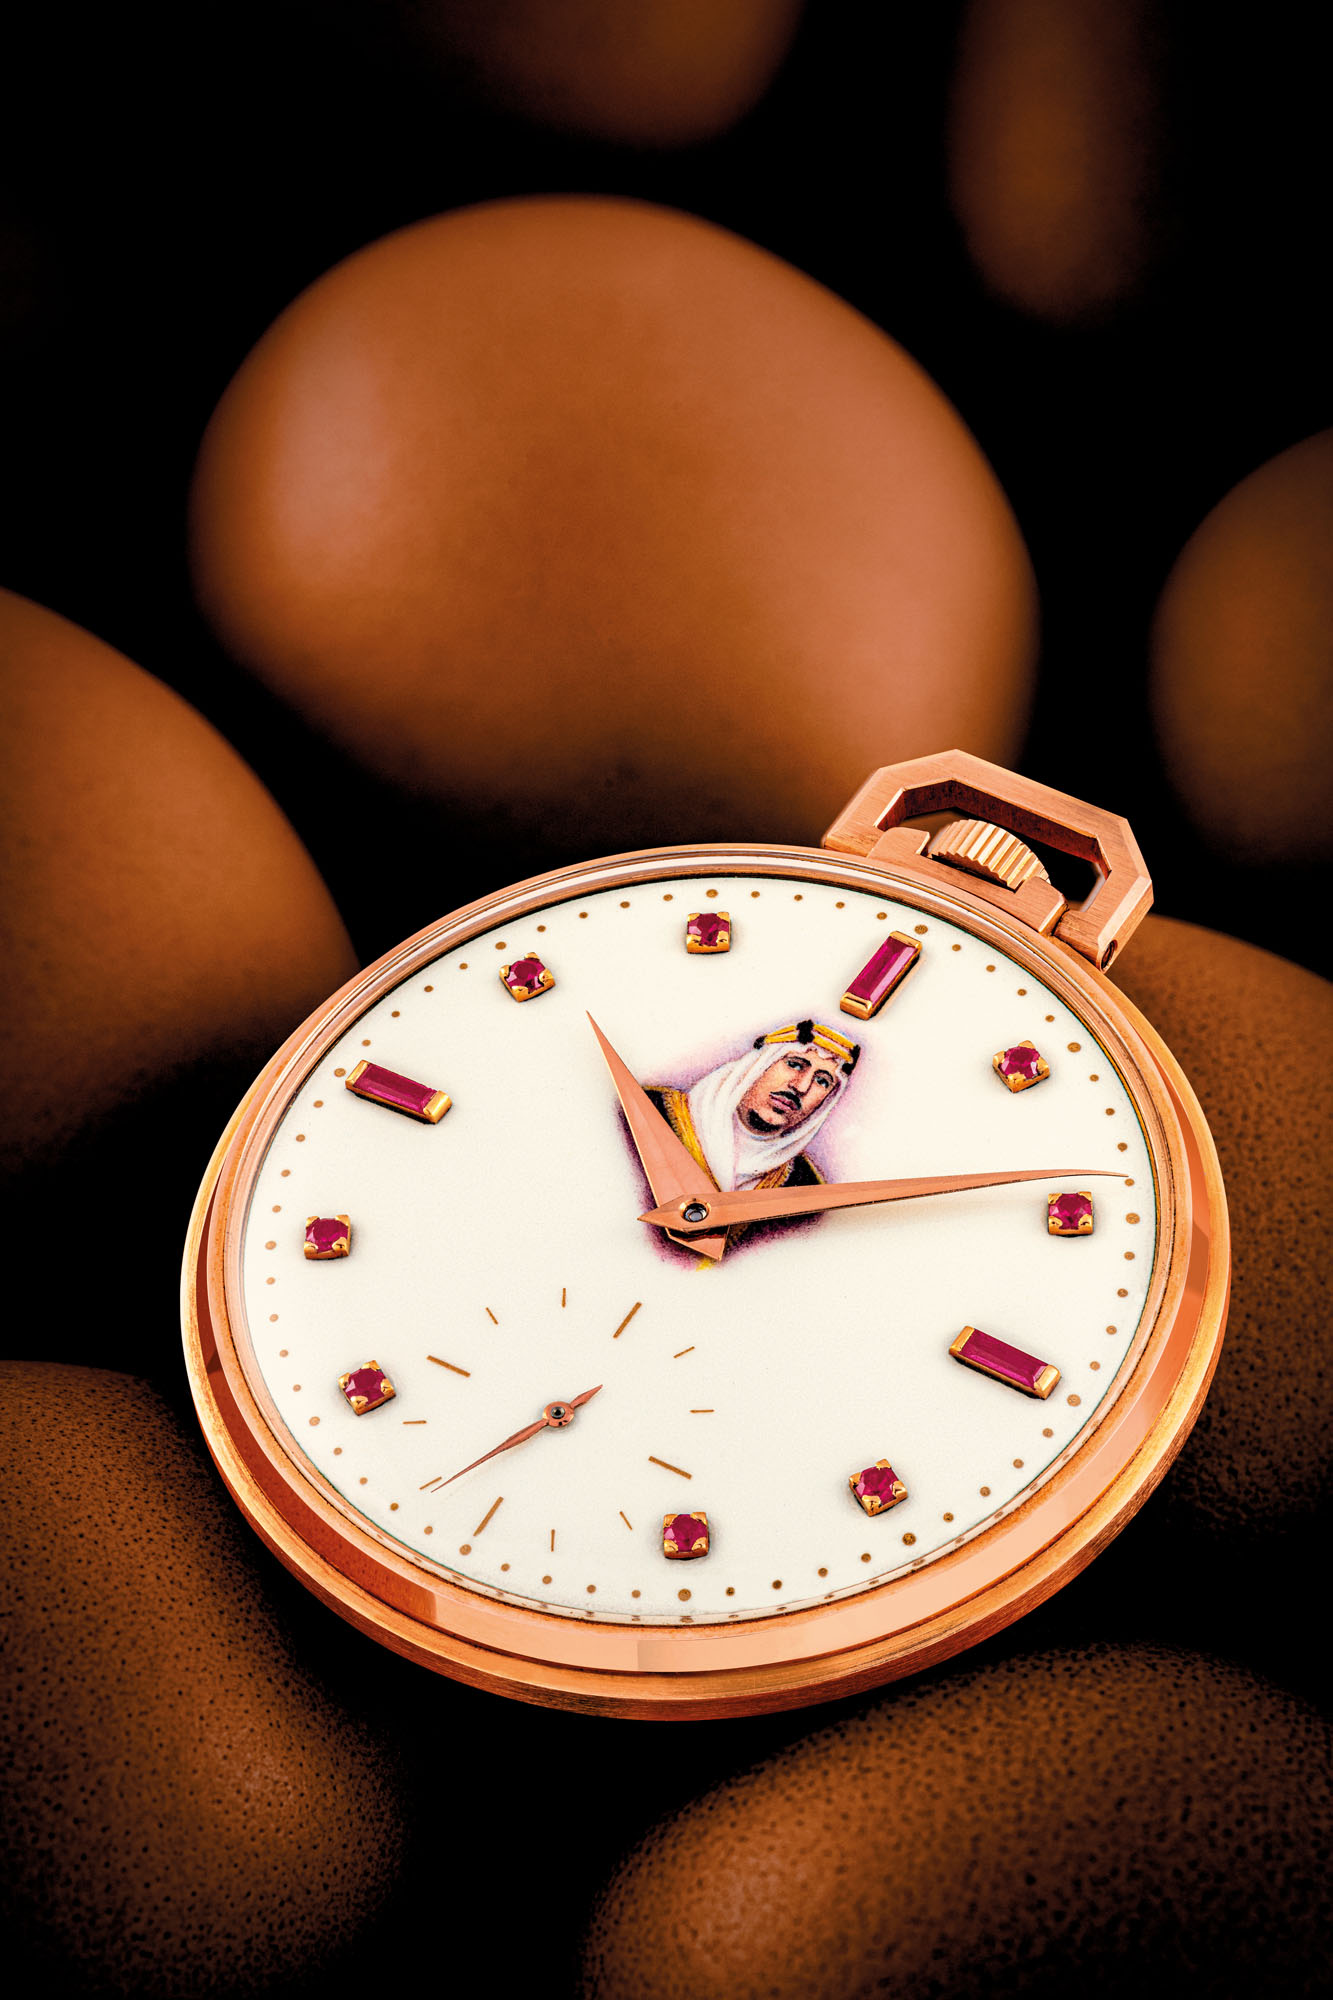 PATEK PHILIPPE. A VERY RARE 18K PINK GOLD OPENFACE KEYLESS LEVER WATCH WITH RUBY-SET ENAMEL DIAL WITH PAINTED PORTRAIT OF KING OF SAUDI ARABIA